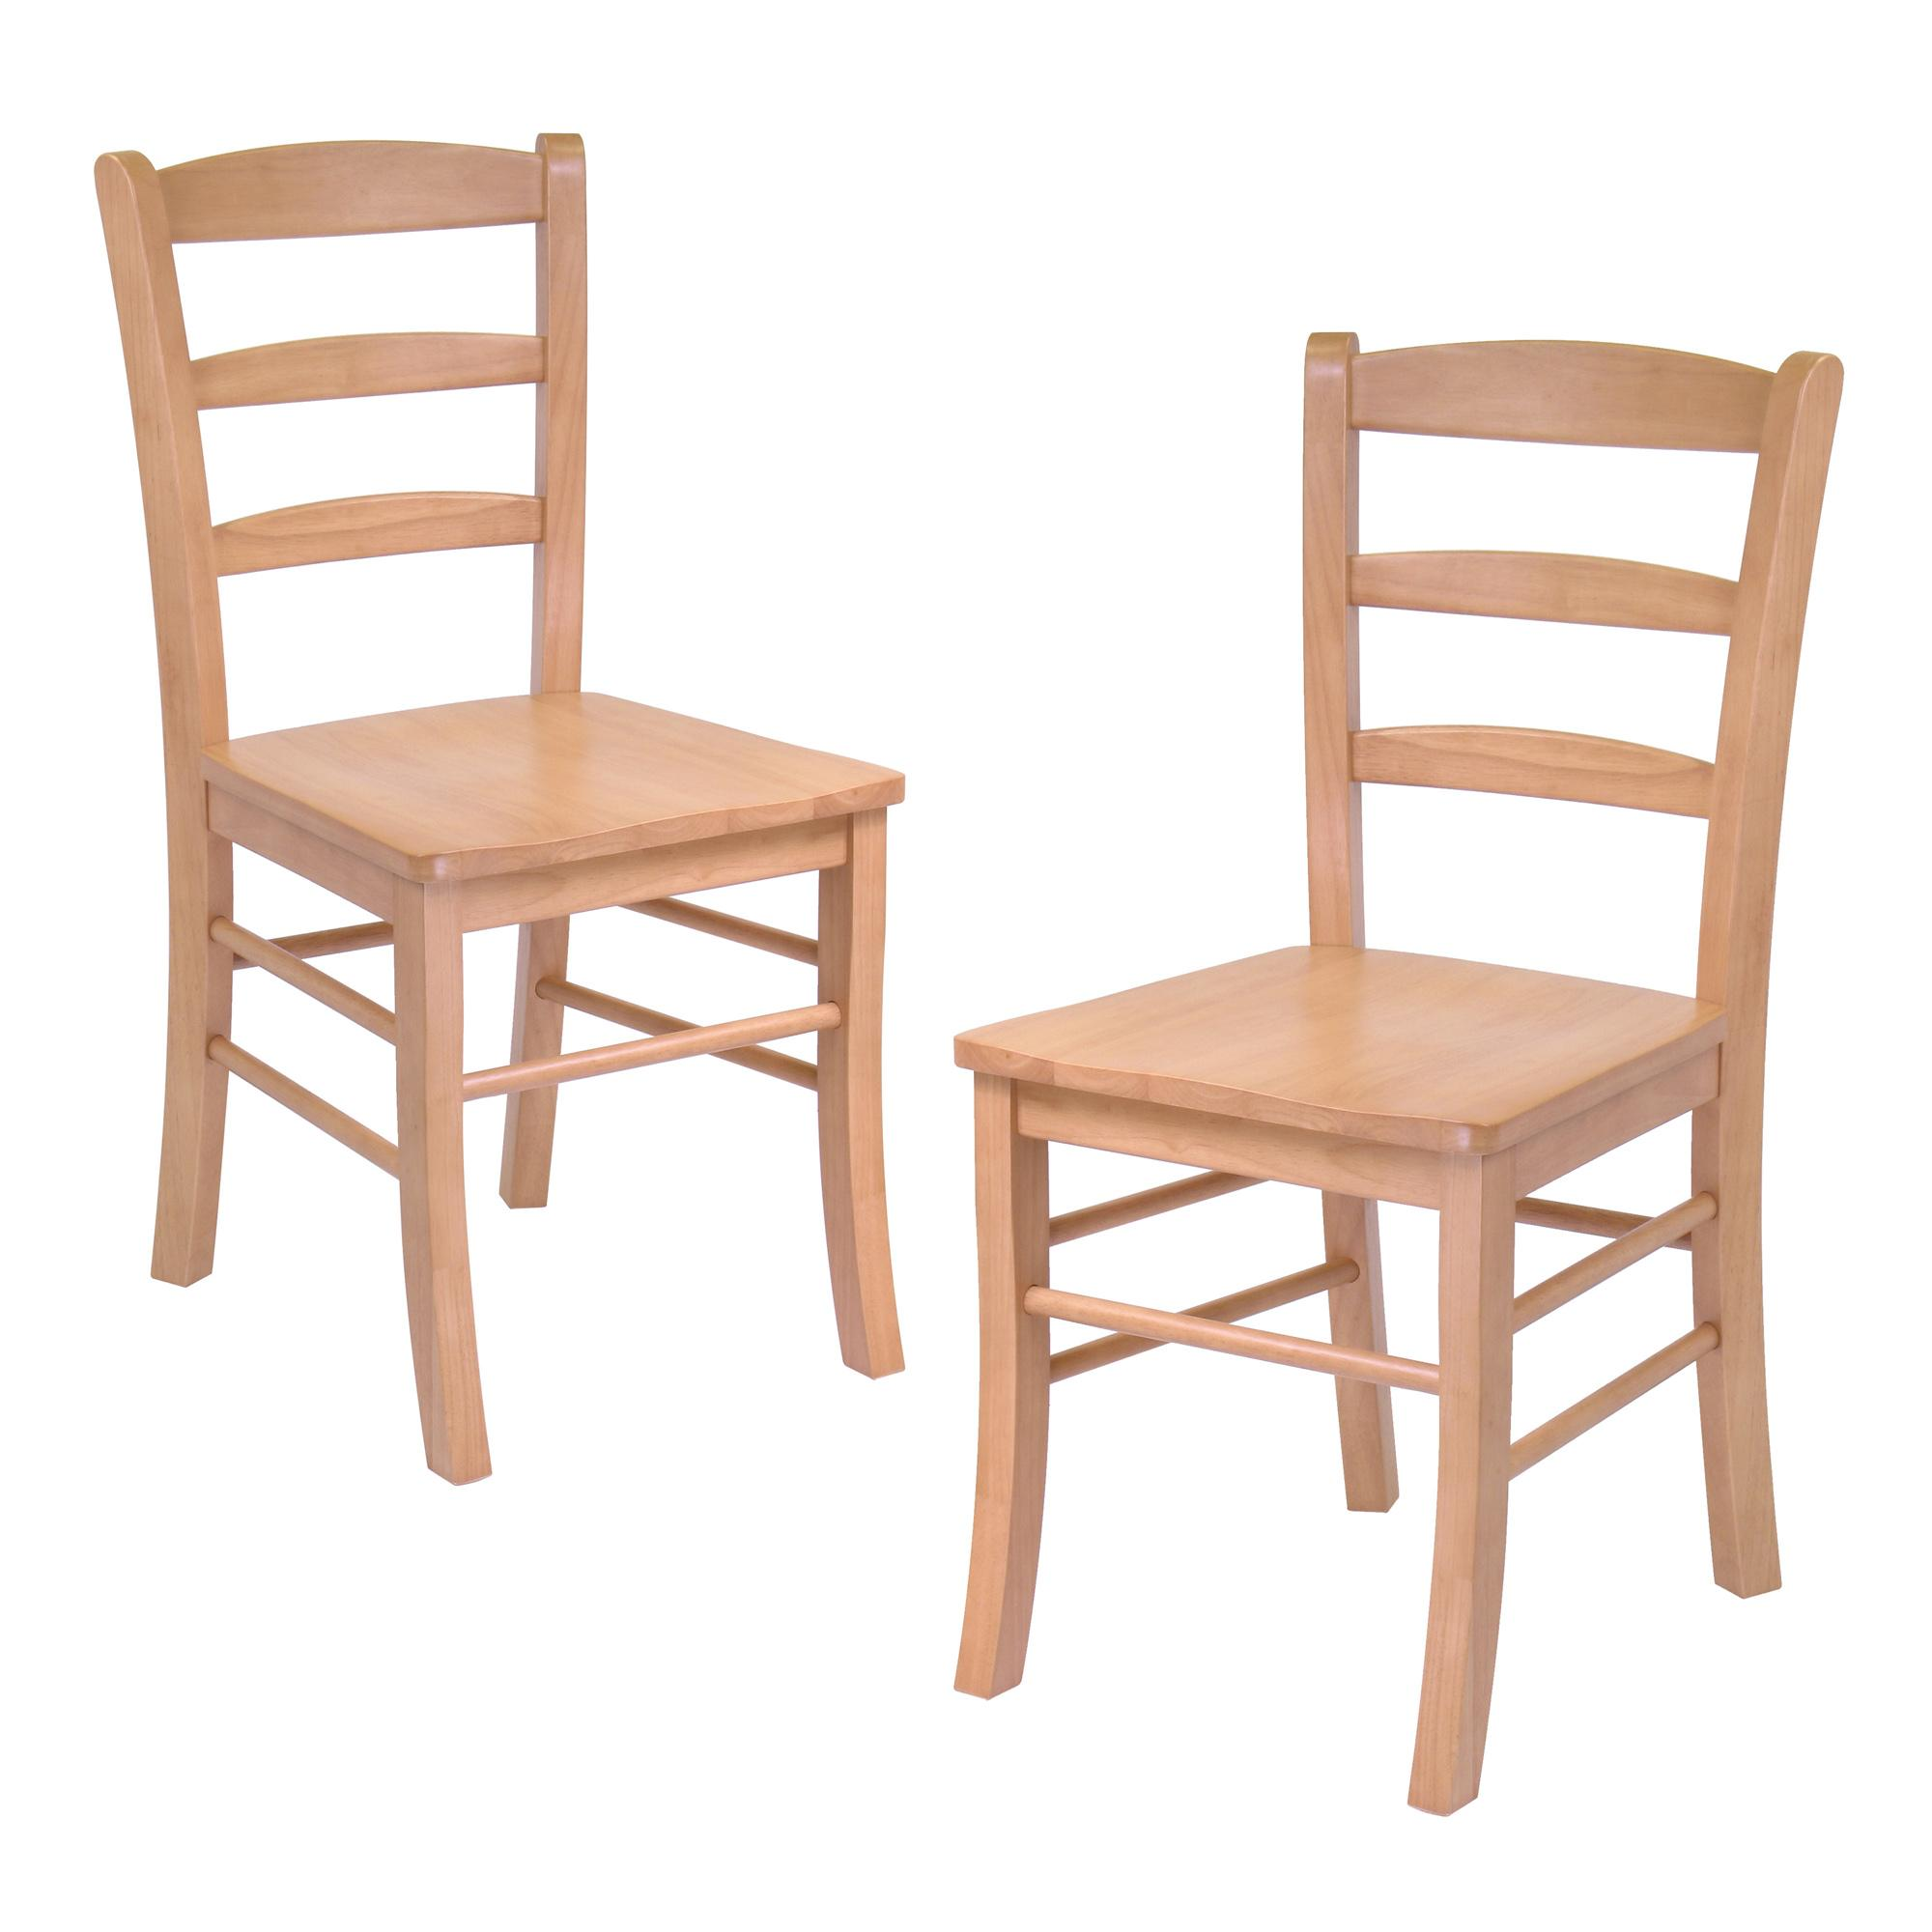 Wooden Chairs Hannah Dining Wood Side Chairs In Light Oak Finish Set Of